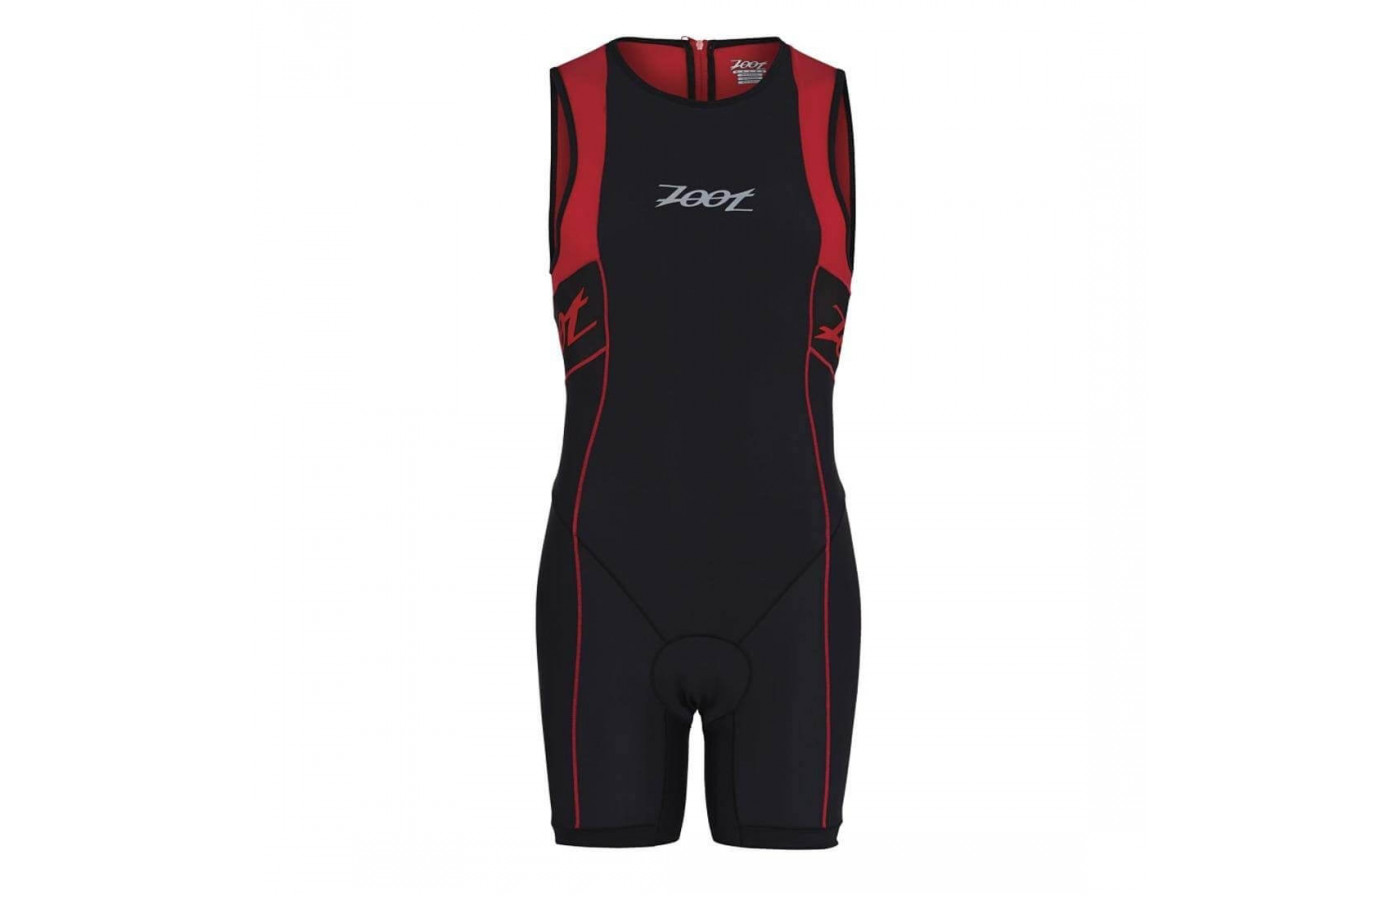 The Zoot Performance Tri Racesuit features side panels for breathability